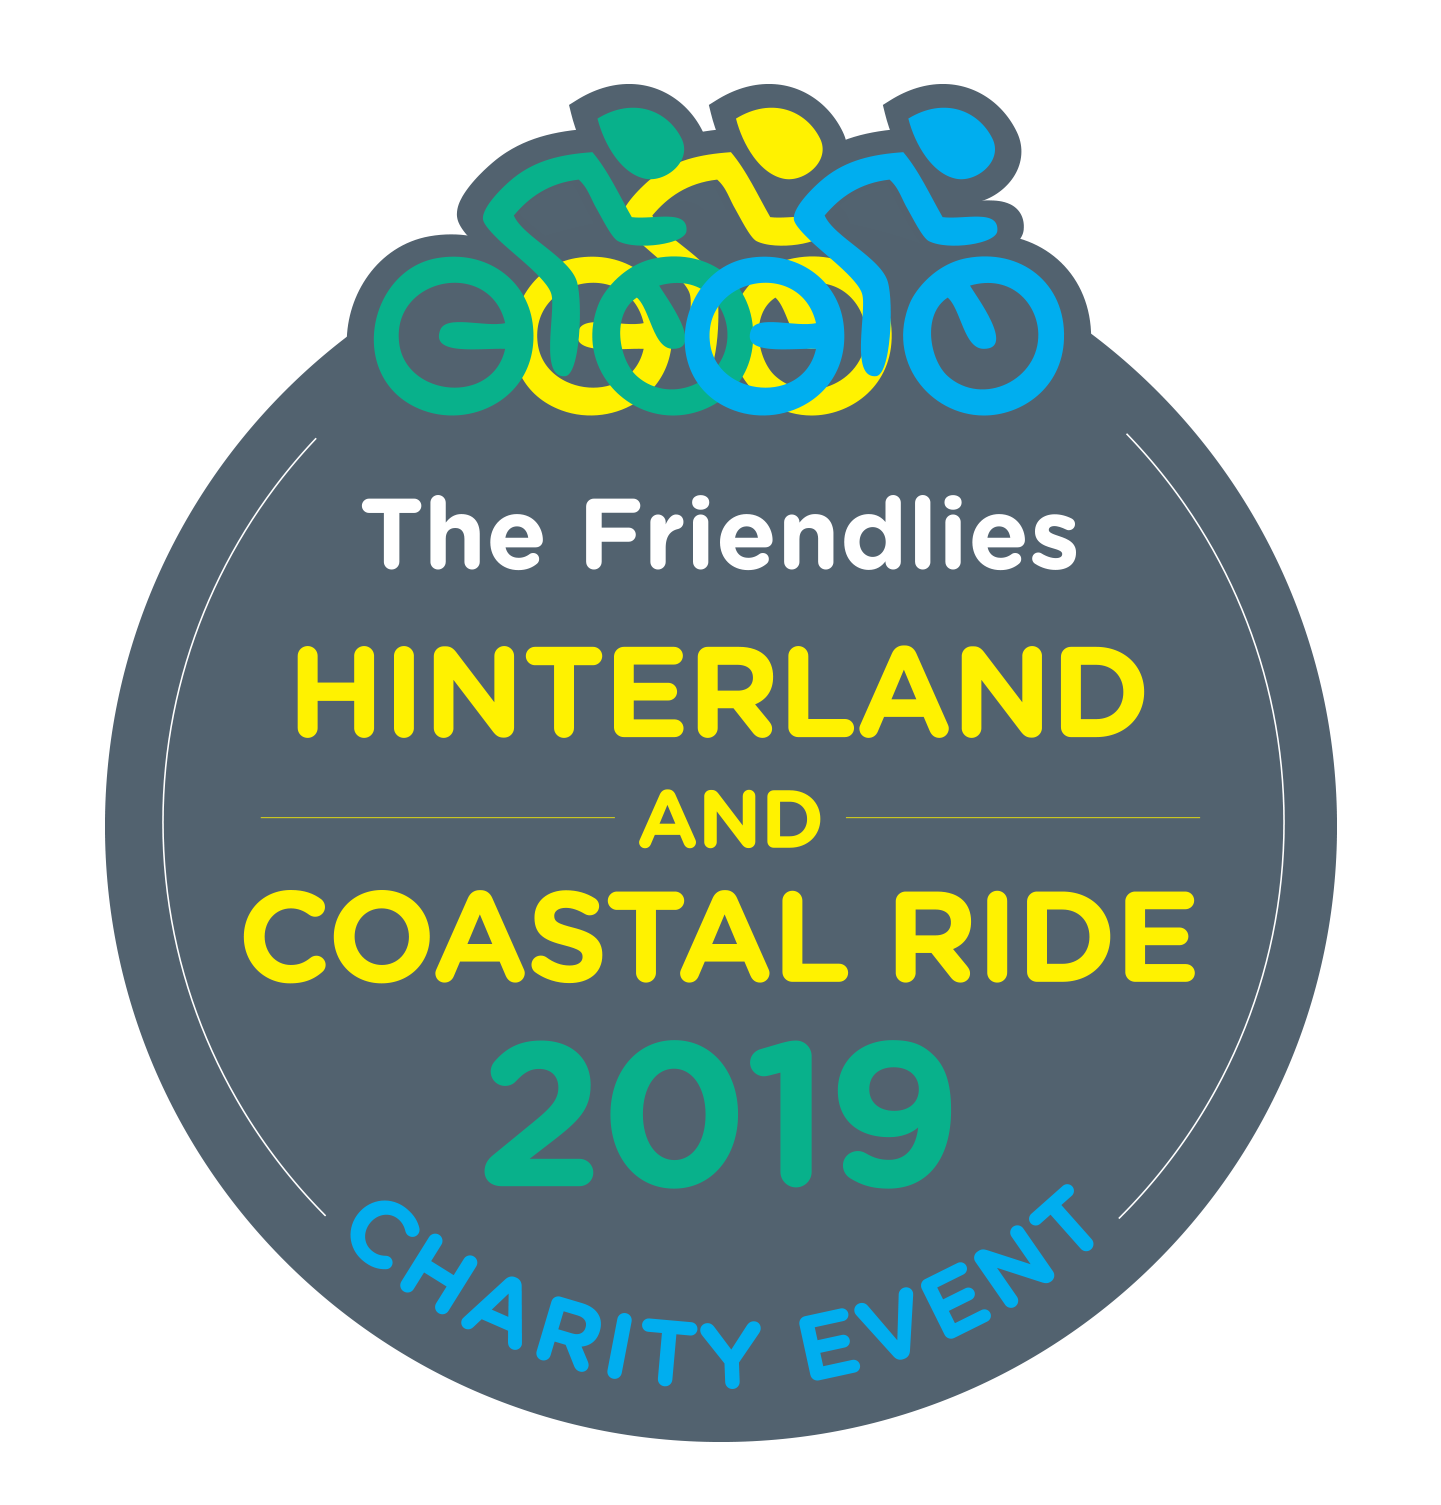 The Friendlies Hinterland & Coastal Ride